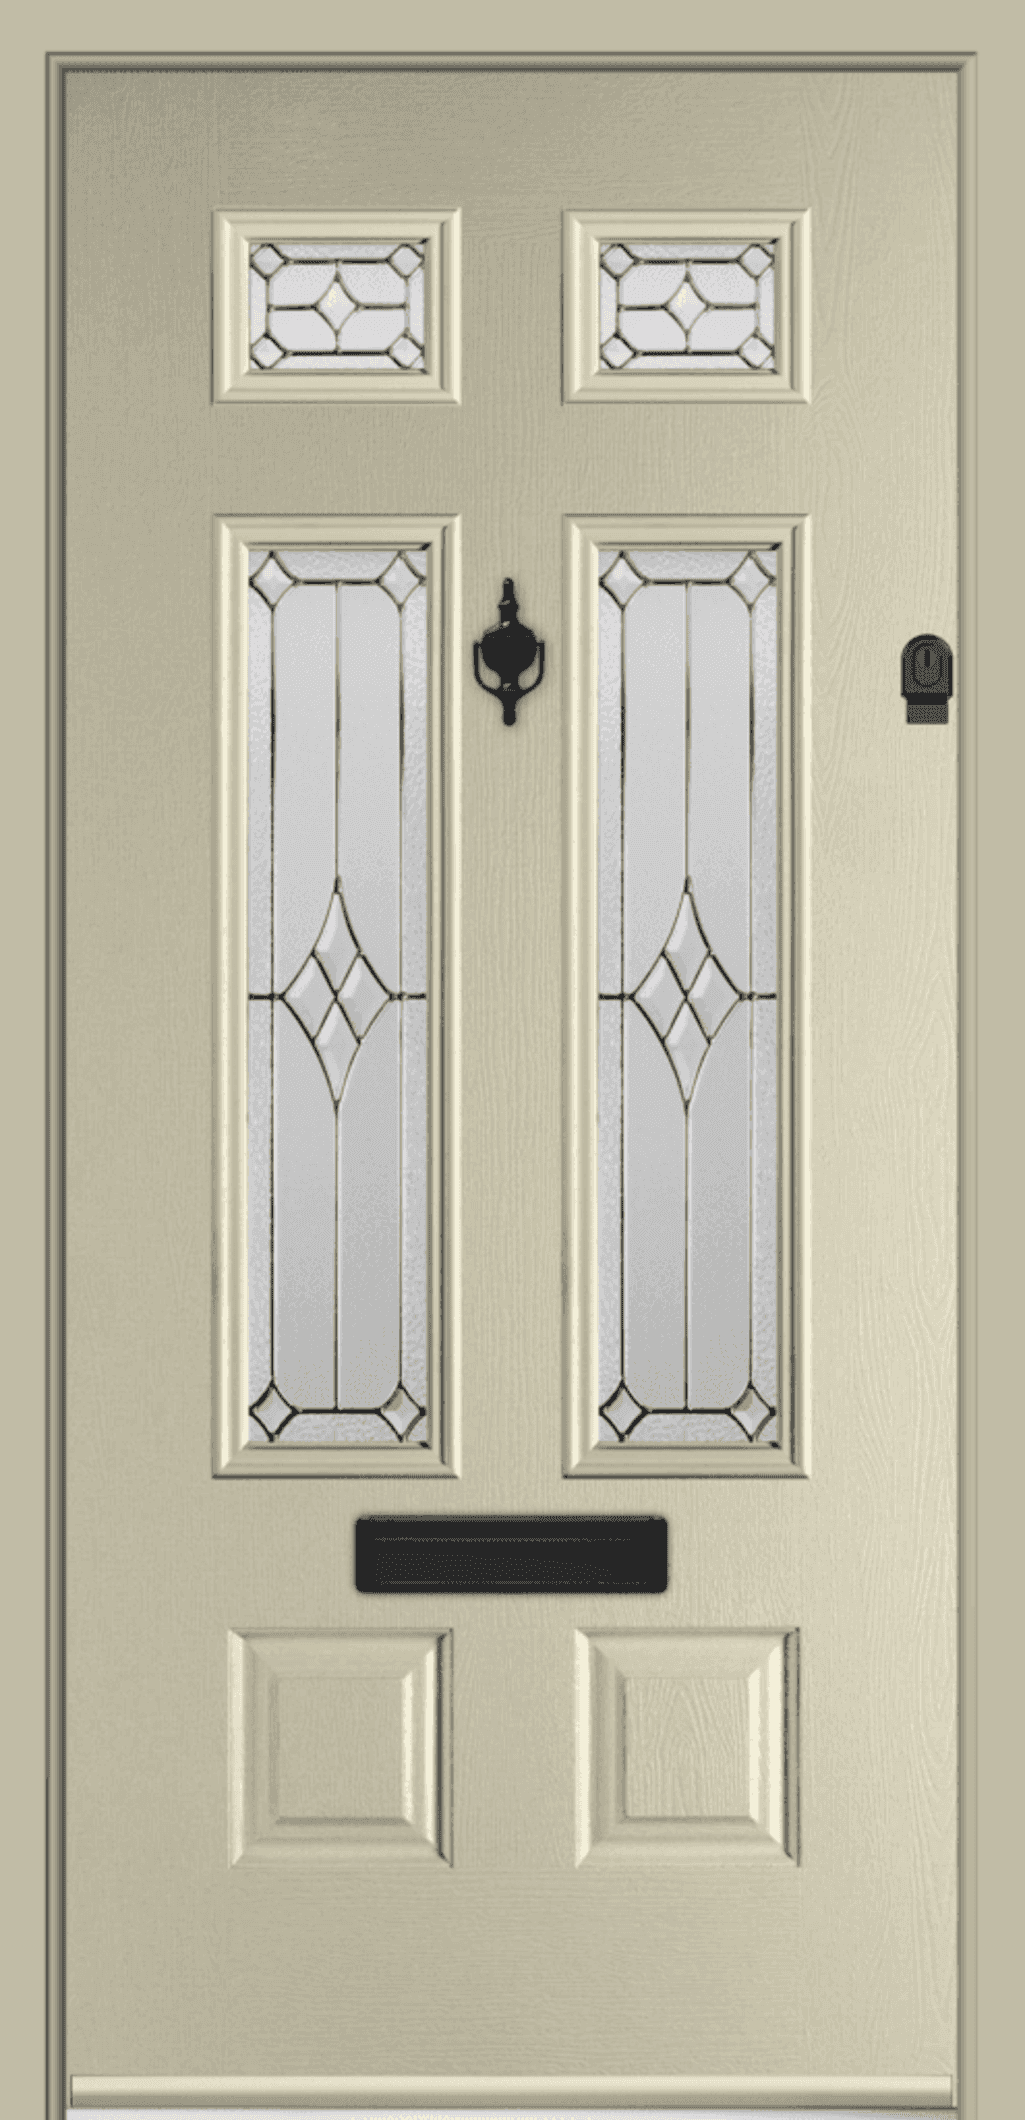 Bowmont  sc 1 st  Endurance Doors & Composite doors in many styles | Endurance® pezcame.com